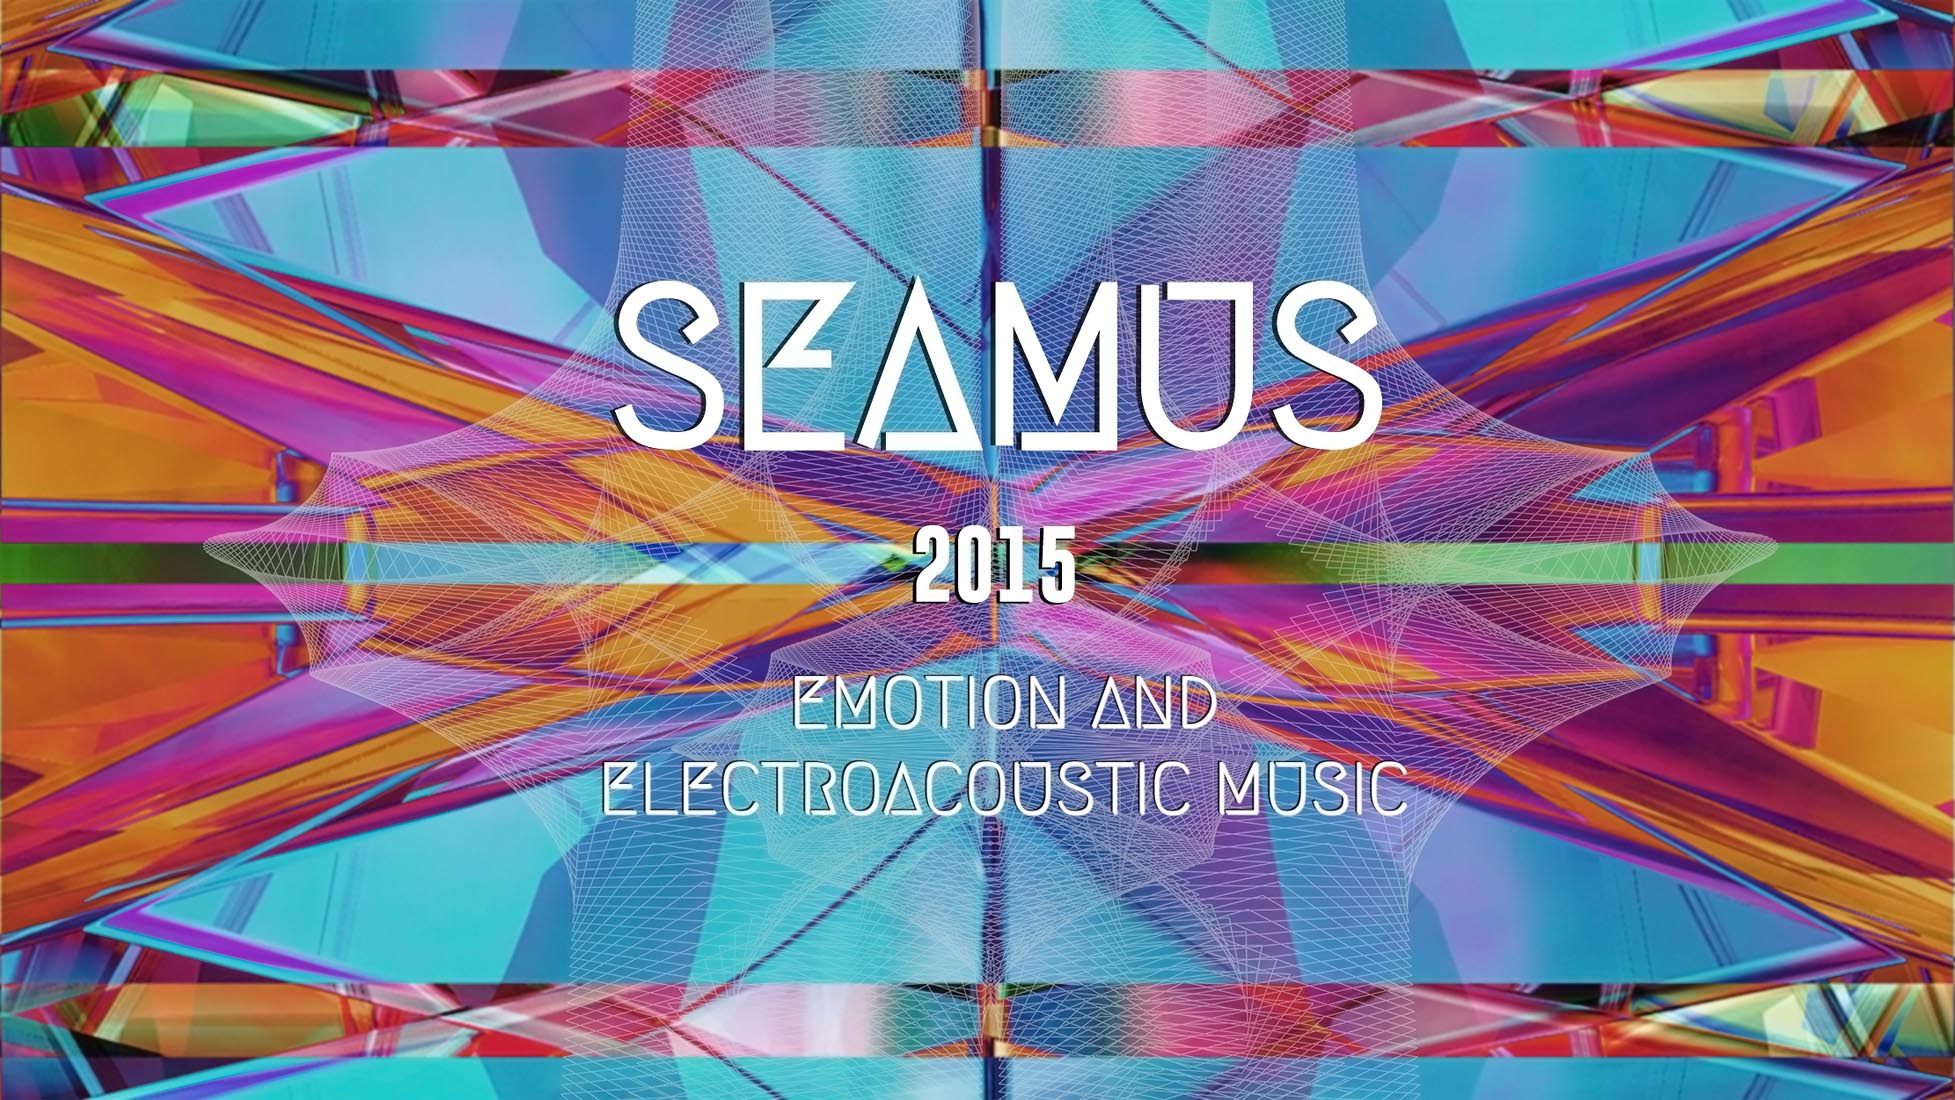 SEAMUS2015 (design by Tamar Peteresen)